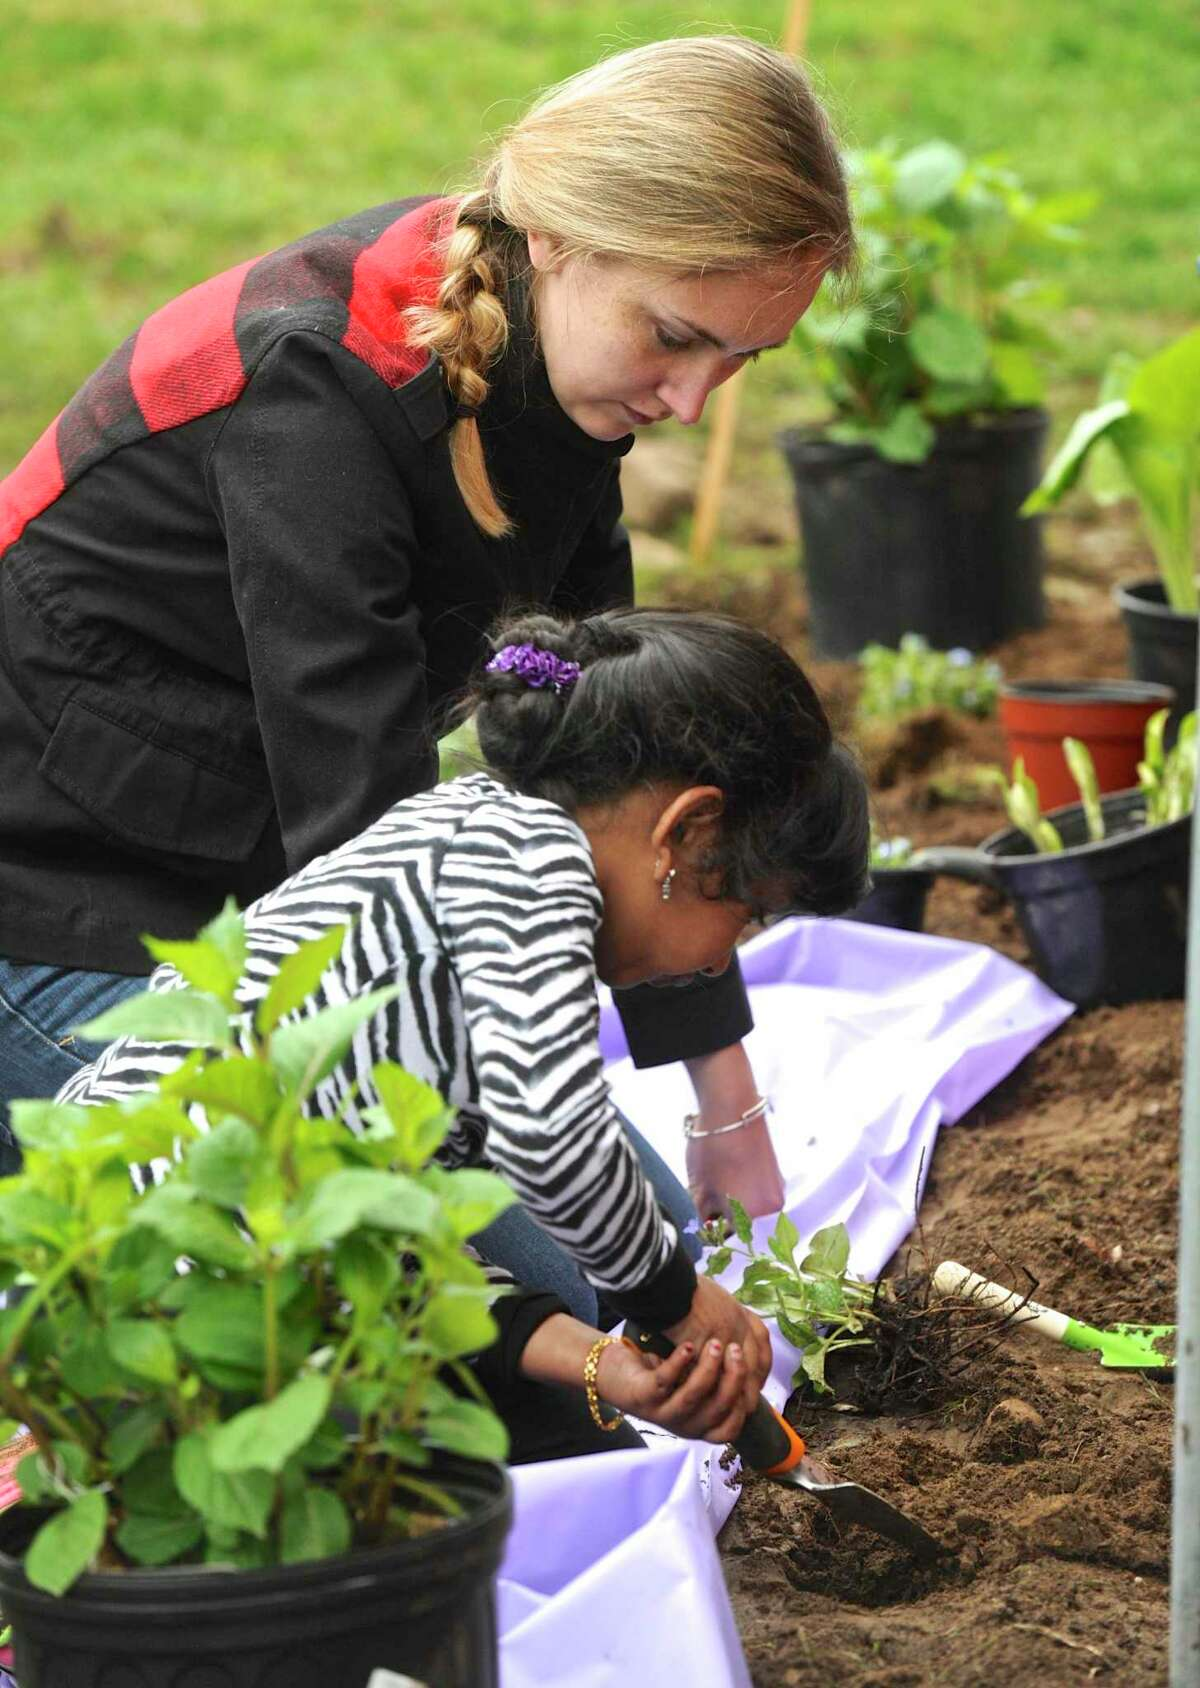 Emily Prescott, with the Brookfield Conservation Commission, helps Jasiel Merlin, 6, of New Milford, plant flowers during the commissions Earth Day celebration at Gurski Homestead. Saturday, April 22, 2017, in Brookfield, Conn.